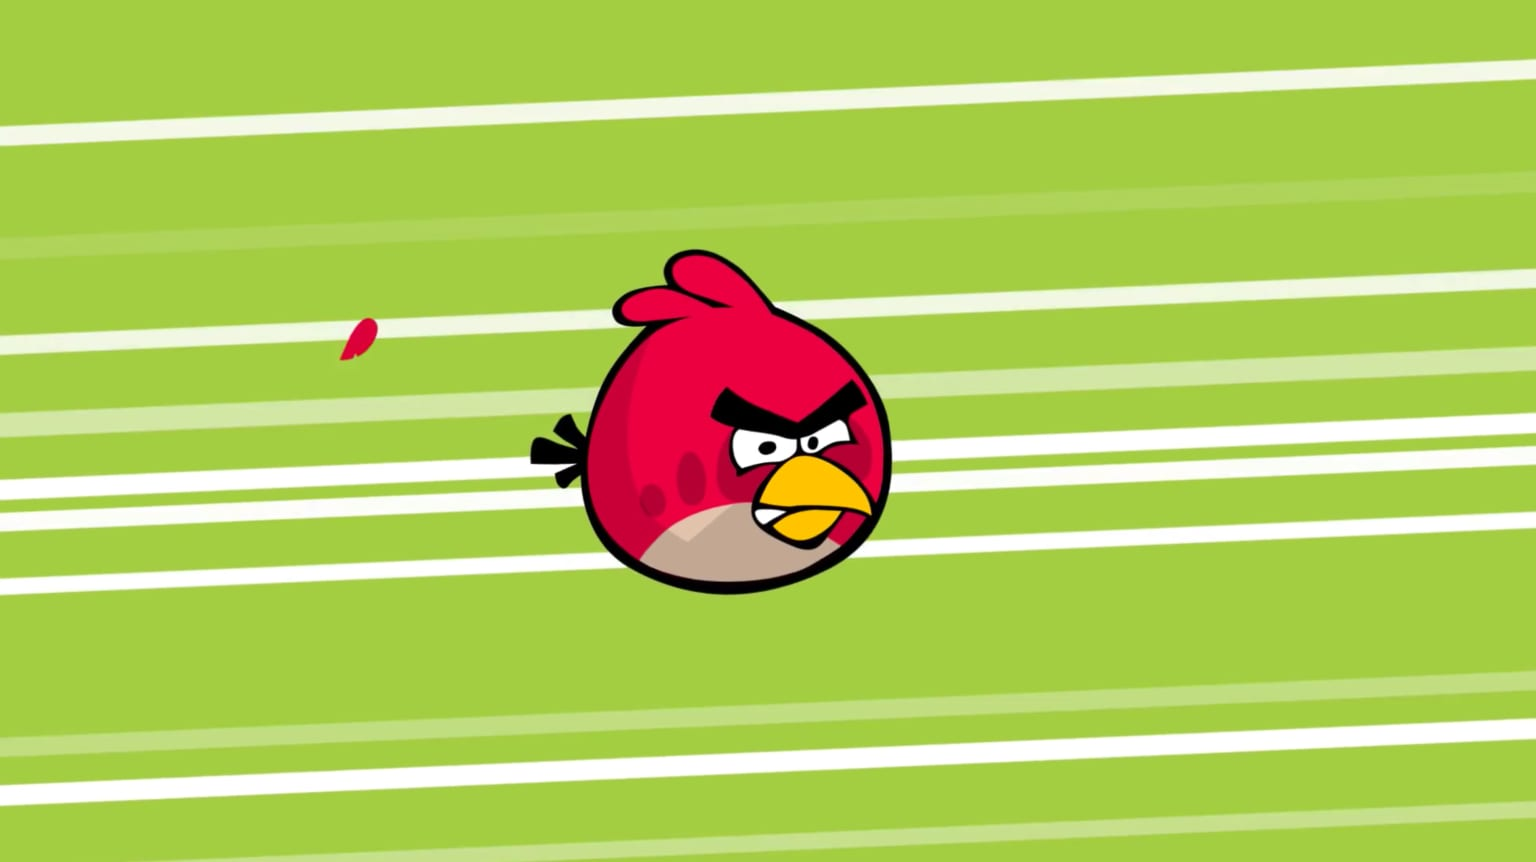 Angry Birds - Give It the Bird